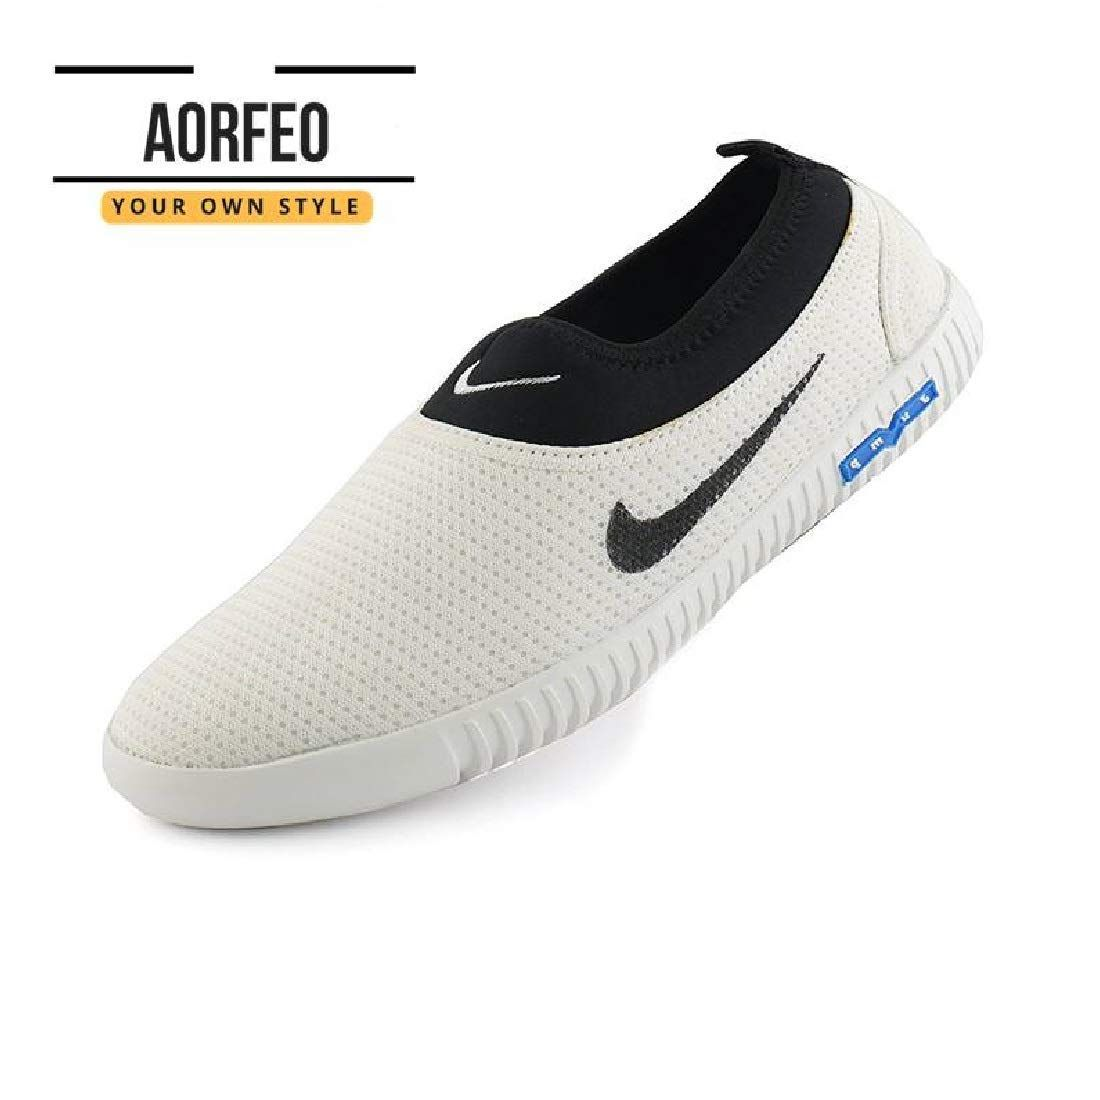 c7ae2d27e1c9 Alfeo Men s Leather Casual Shoes  Buy Online at Low Prices in India -  Amazon.in